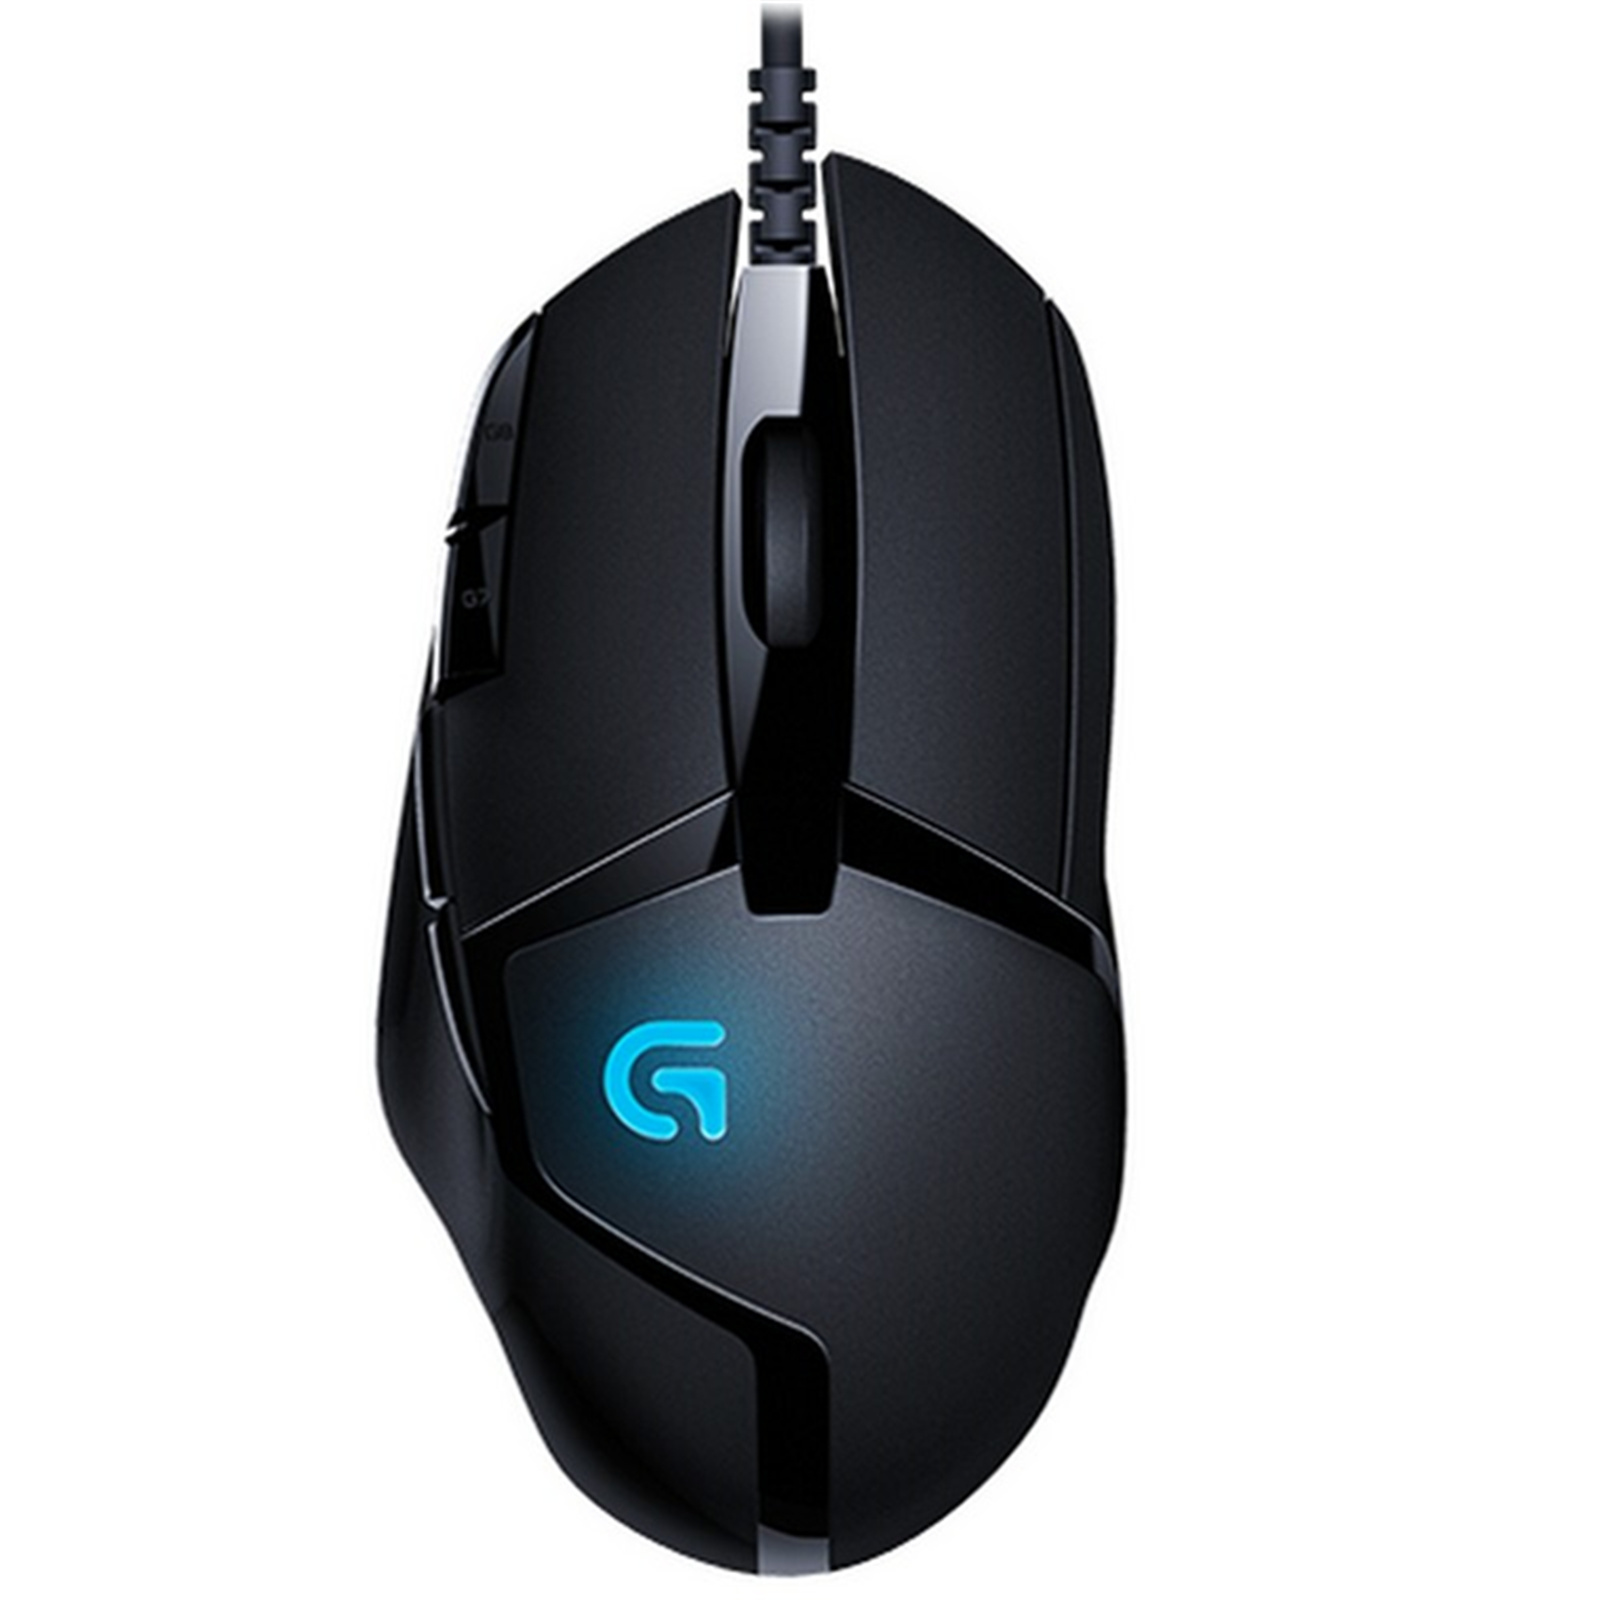 cdbe672d544 Buy the Logitech G402 Hyperion Fury Gaming Mouse ( 910-004070 ...